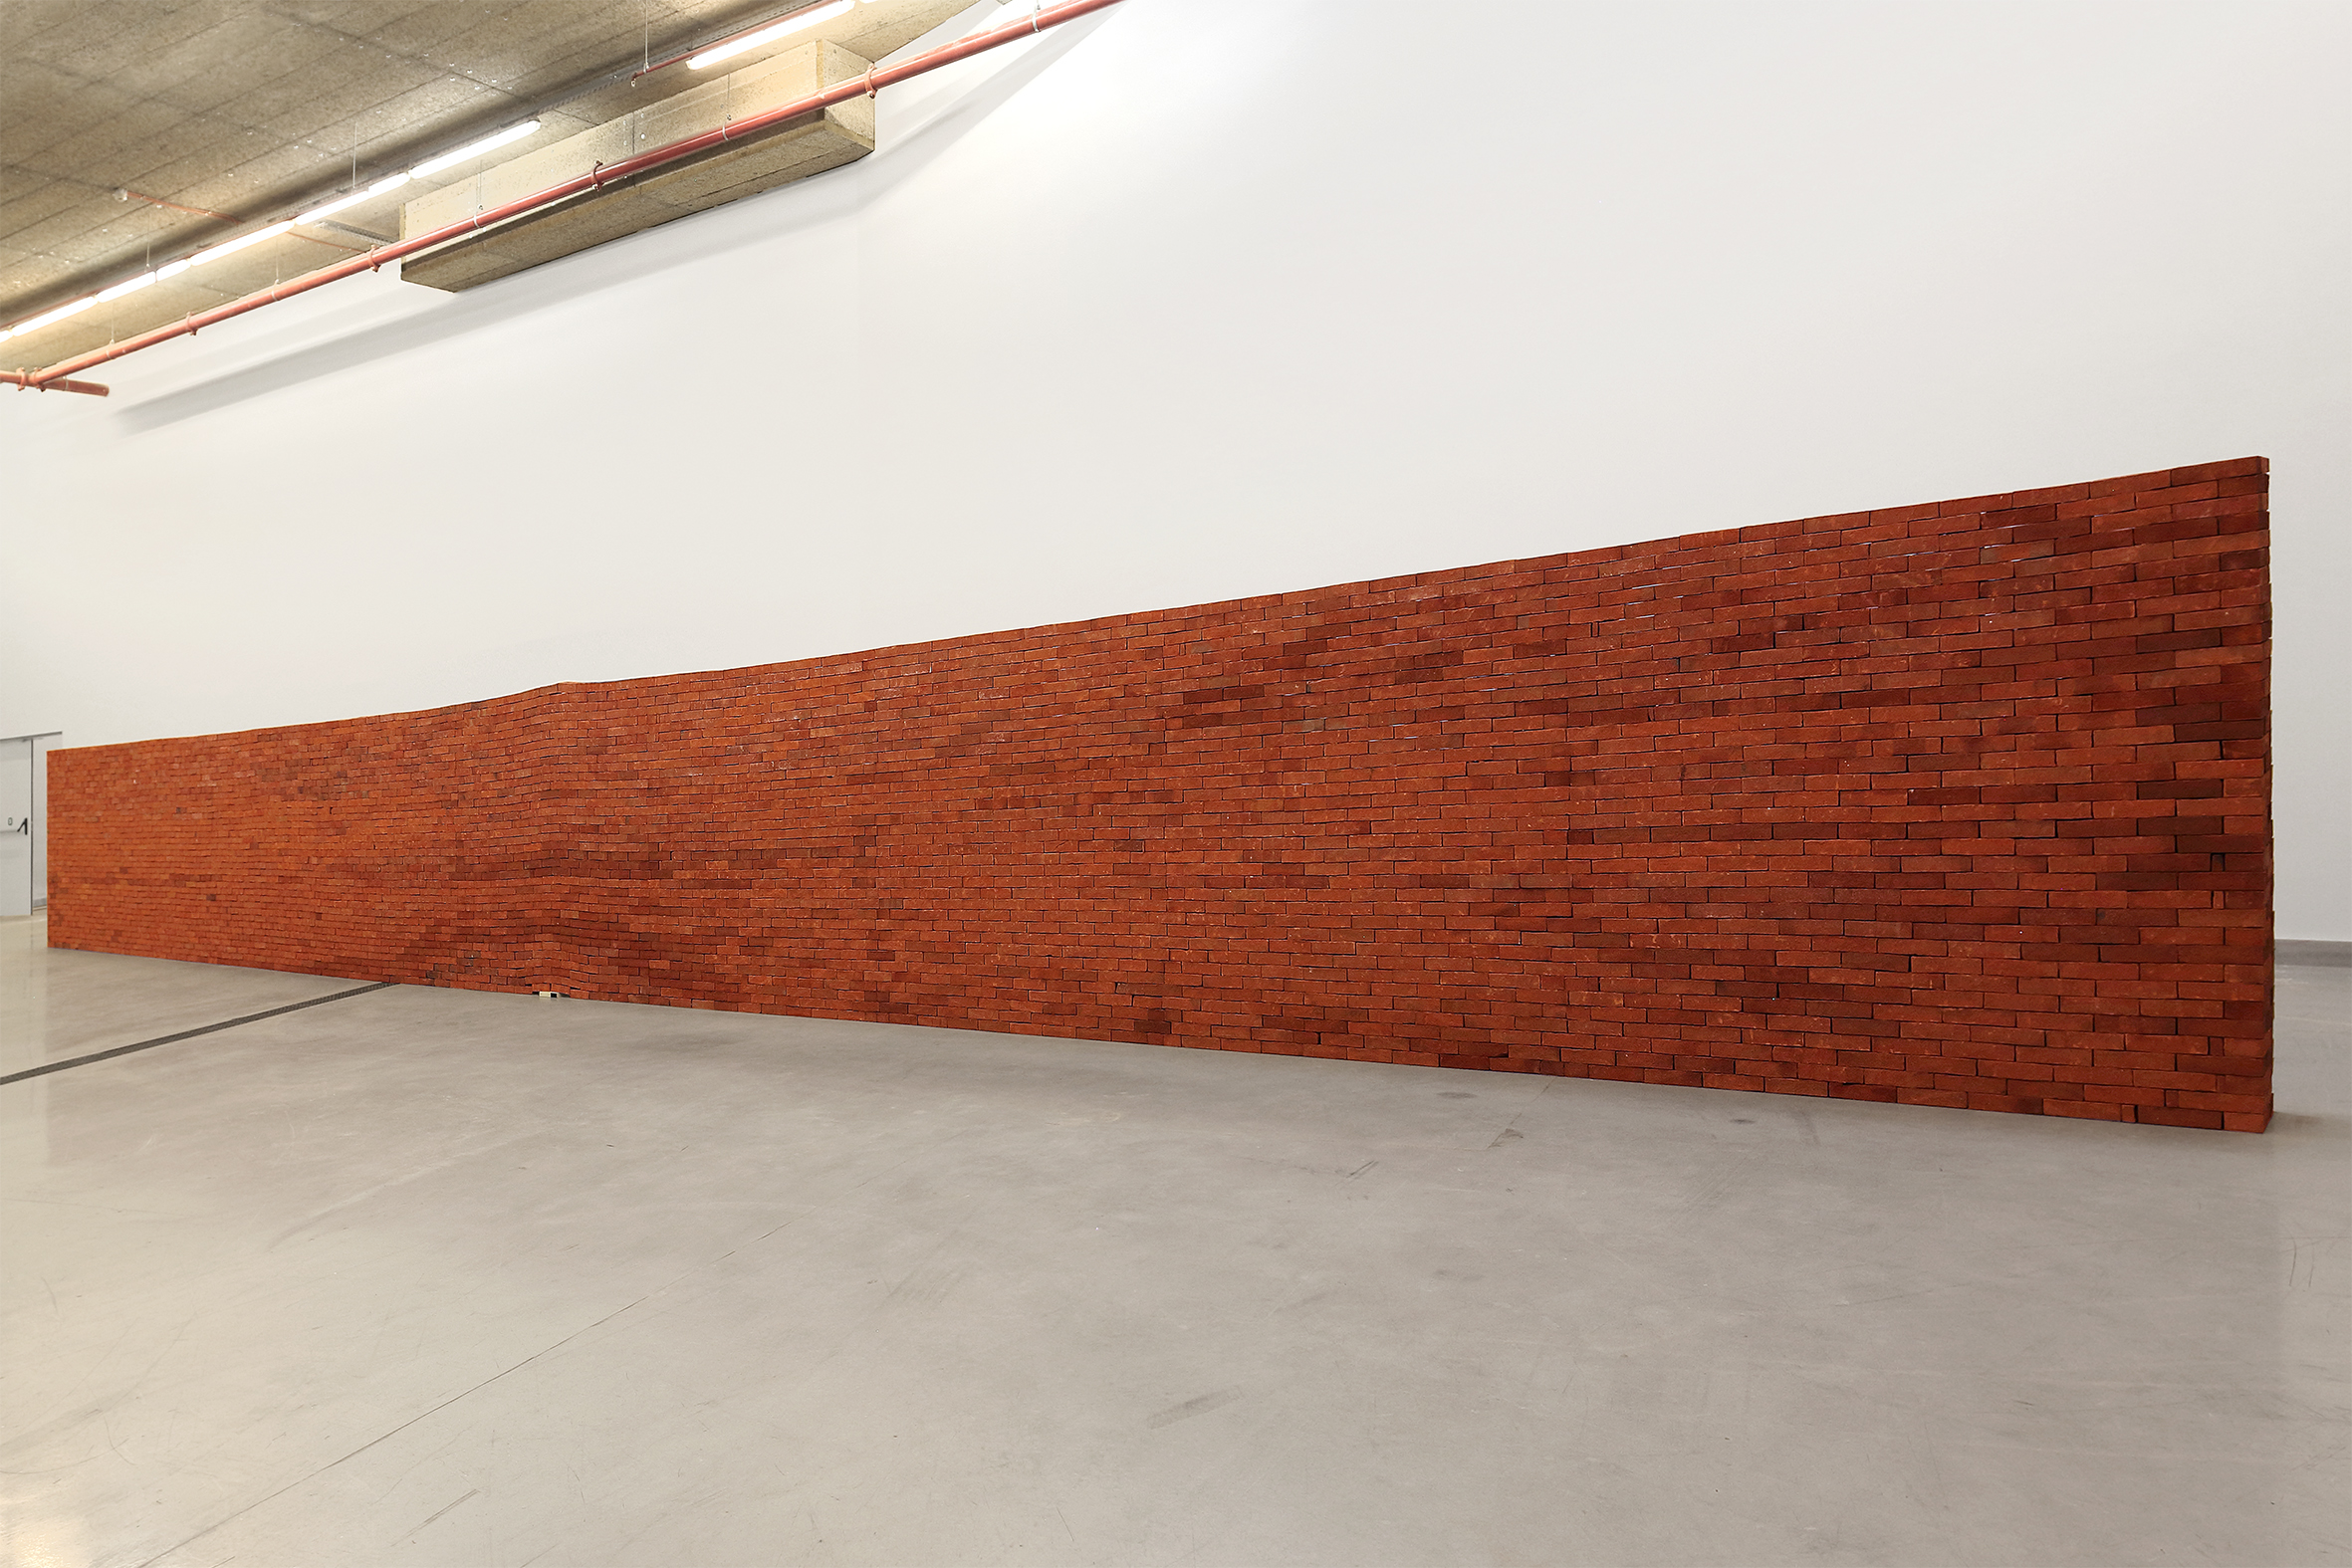 El castillo   /   The Castle  , 2007  Ladrillos, edición de  El castillo  de Franz Kafka / Bricks, edition of Franz Kafka's  The Castle   2300 x 175 x 40 cm  Vista de la instalación en la exposición After Babel, Annex M, Athens, 2018 / Installation view at the exhibition After Babel, Annex M, Athens, 2018